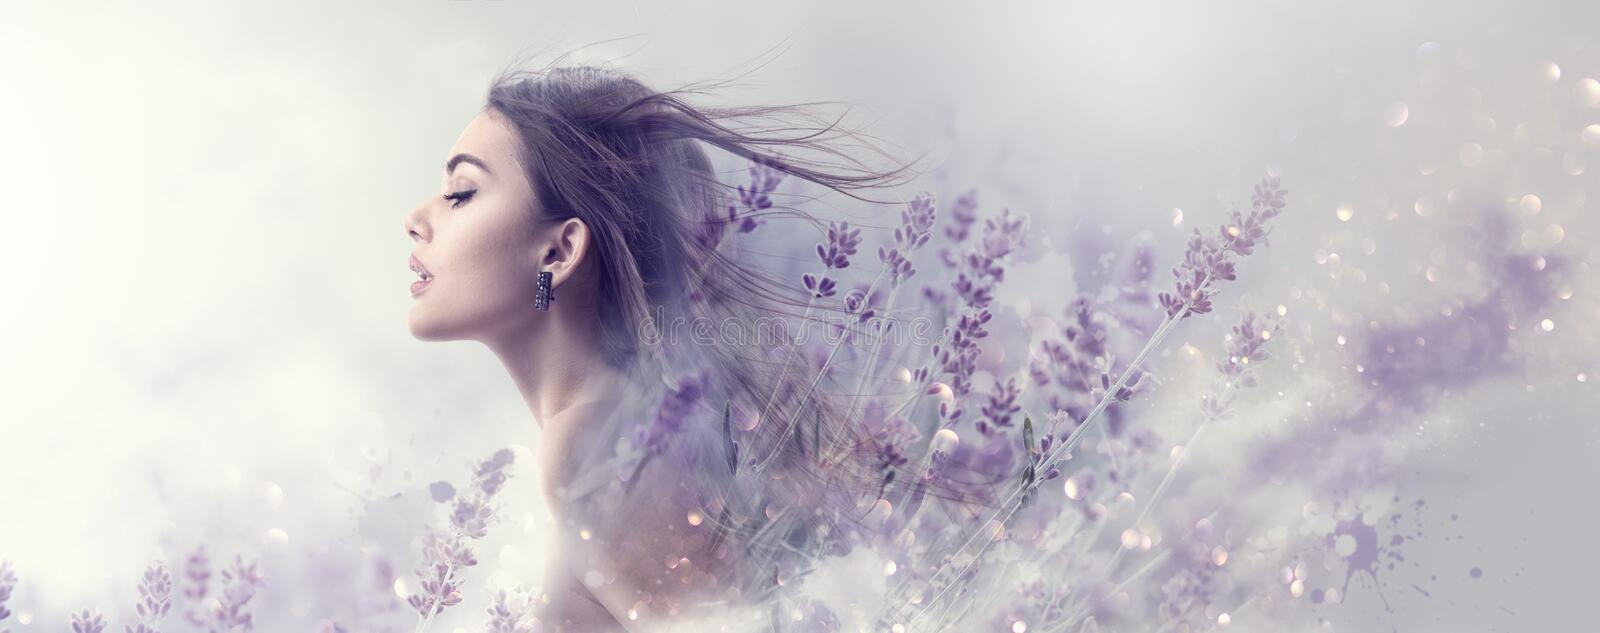 Beauty model girl with lavender flowers. Beautiful young brunette woman with flying long hair profile portrait stock photo